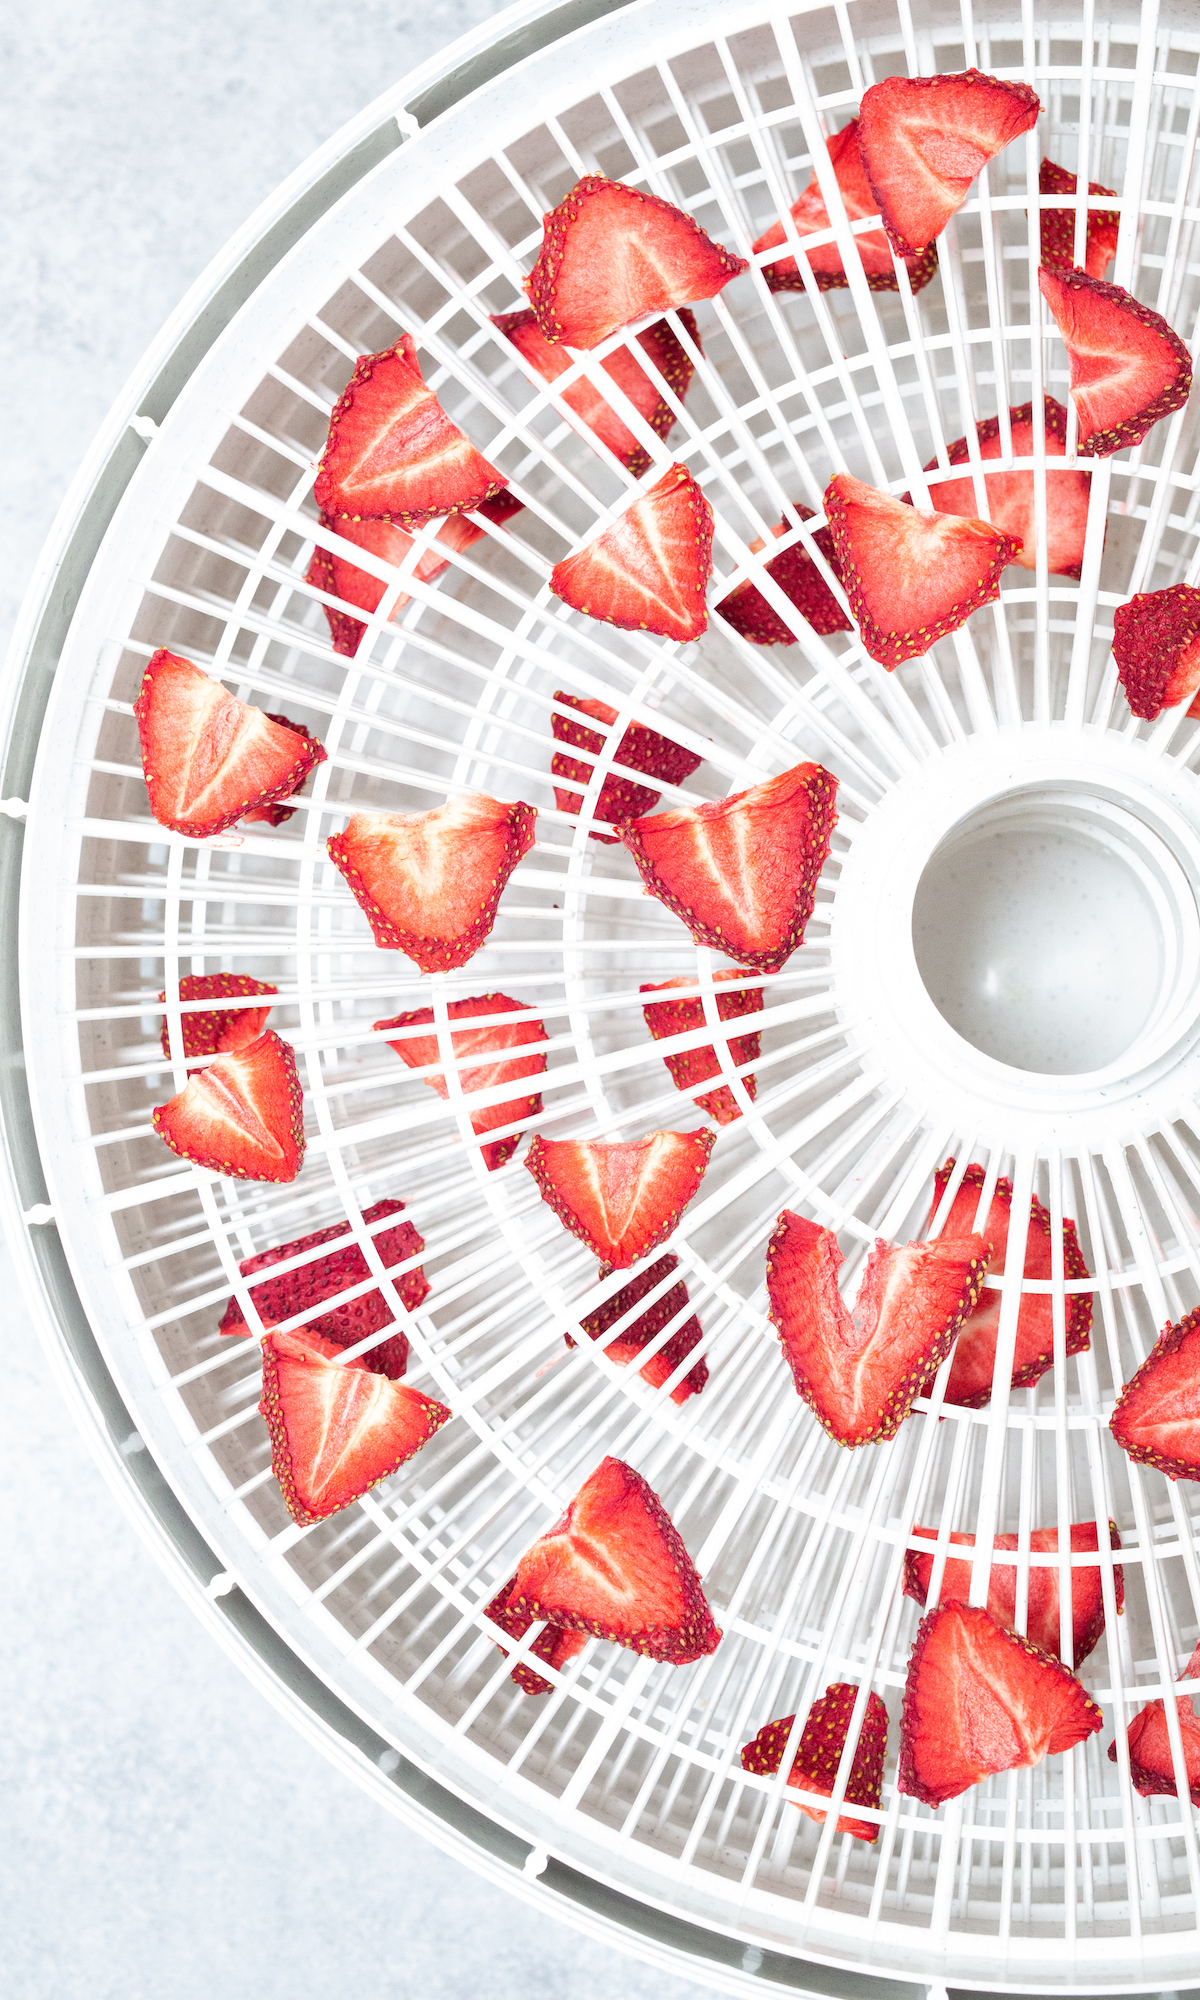 Overhead view of a dehydrator tray filled with sliced and dehydrated strawberries